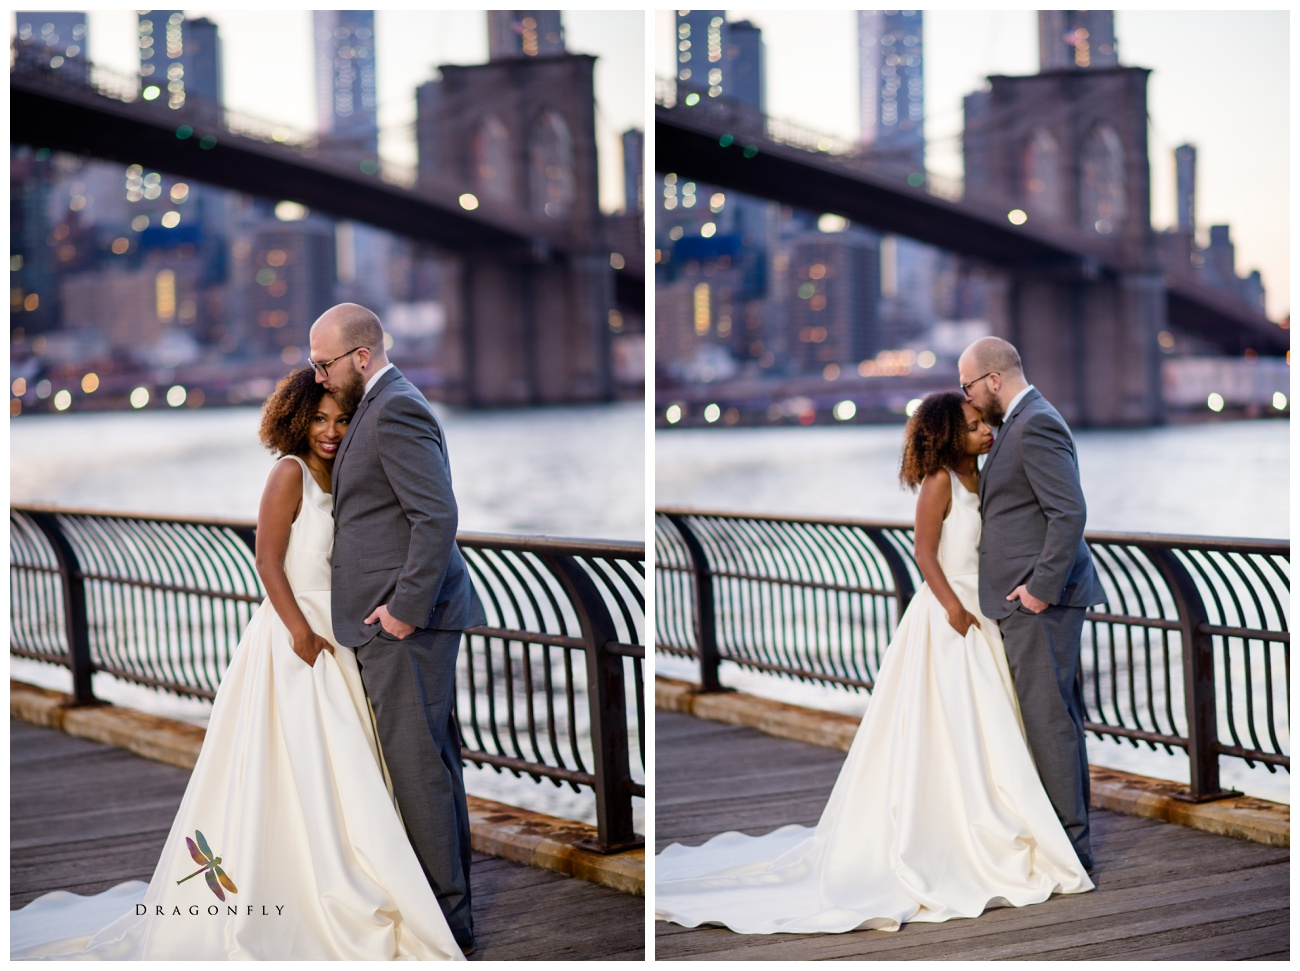 Dumbo Brooklyn New York Wedding Elopement Photo_0018.jpg